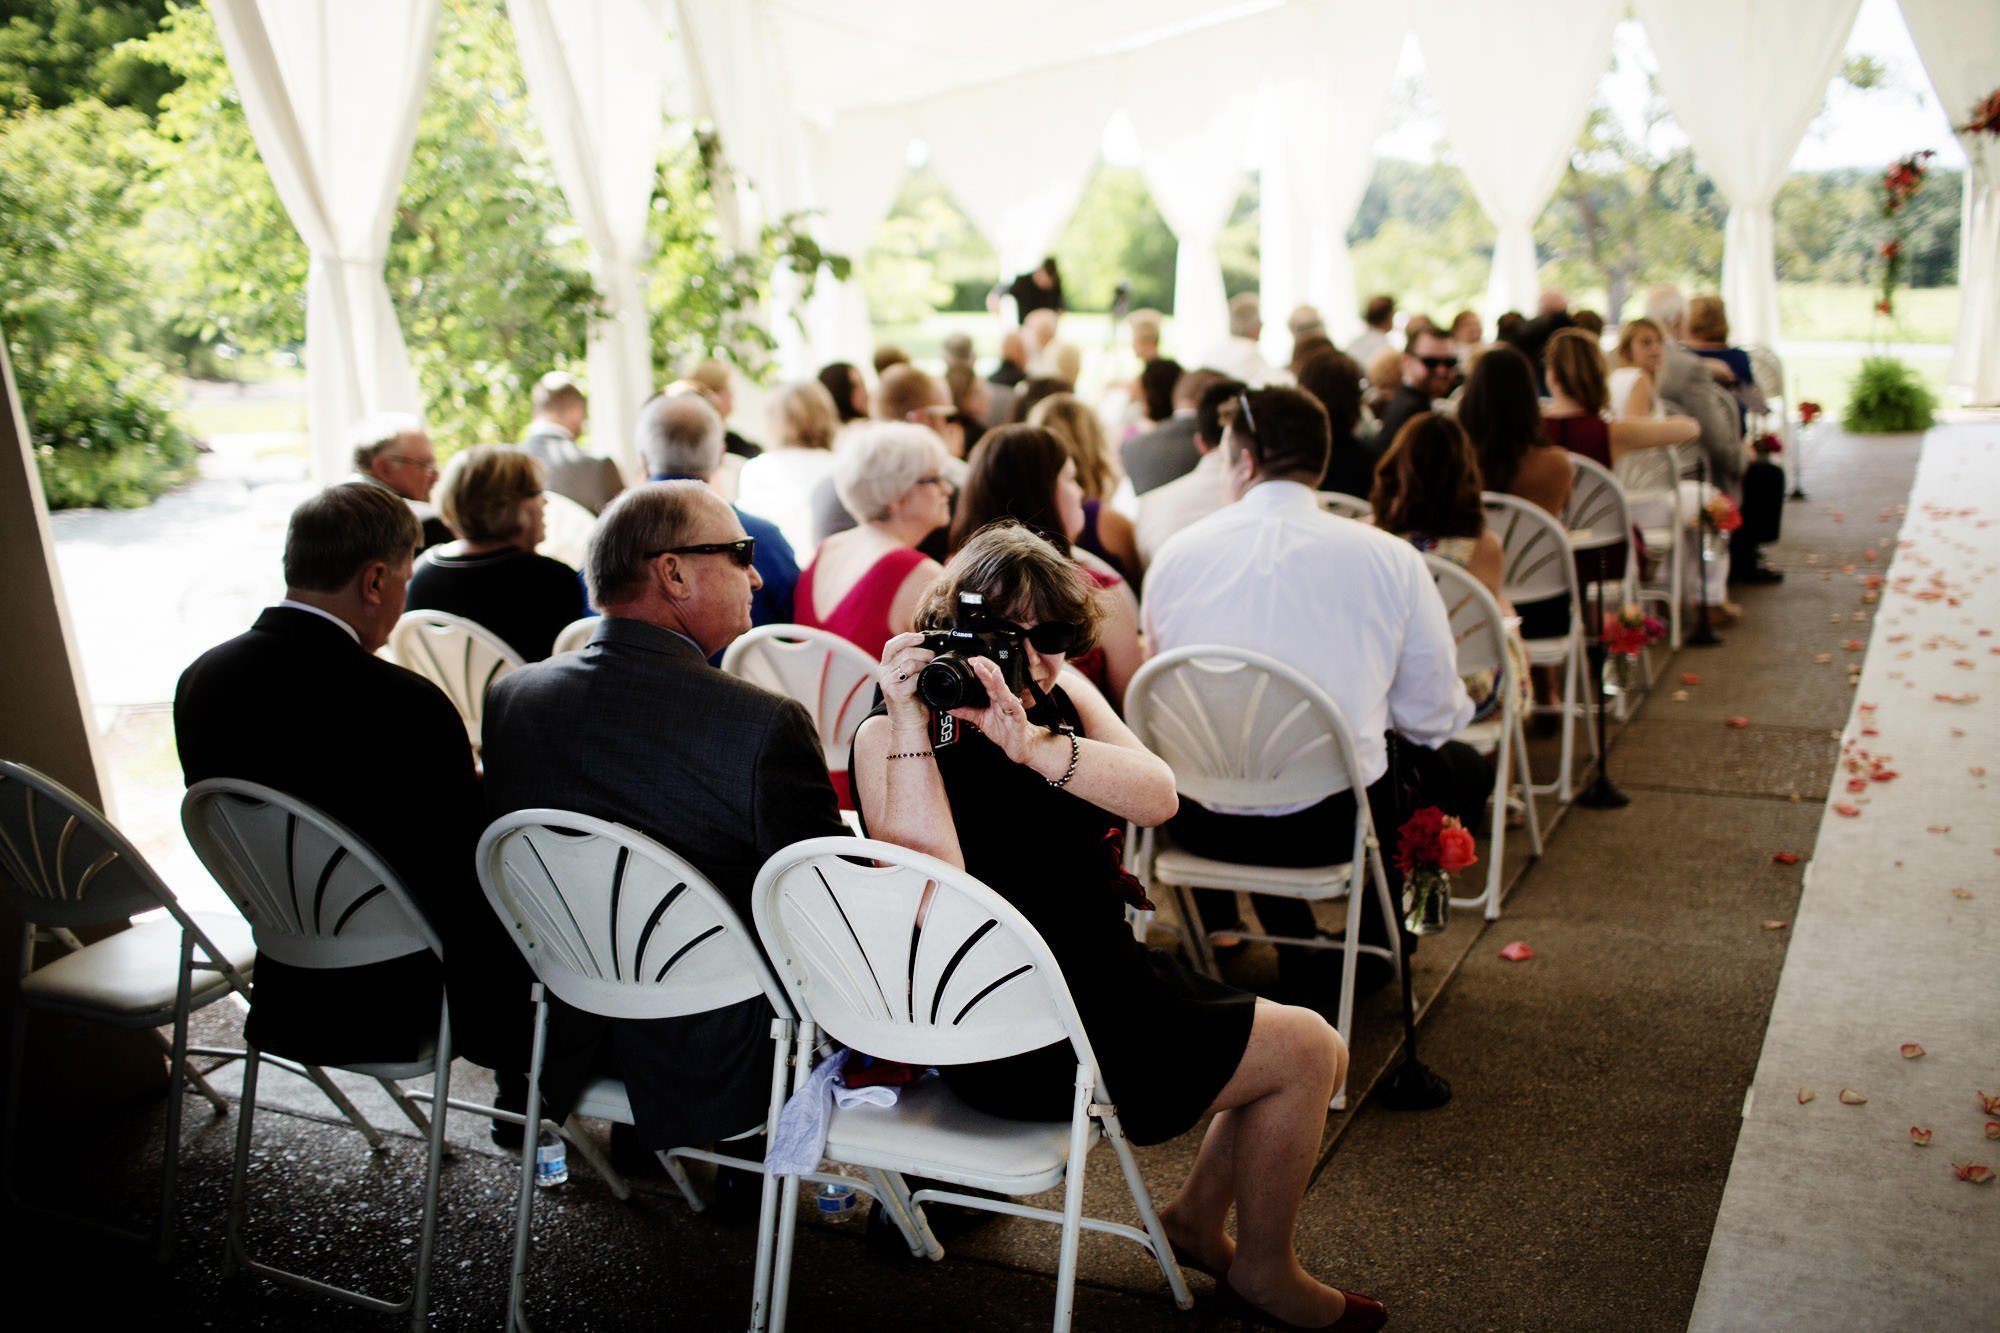 Guests take photos prior to the wedding ceremony at the Penn State Arboretum.